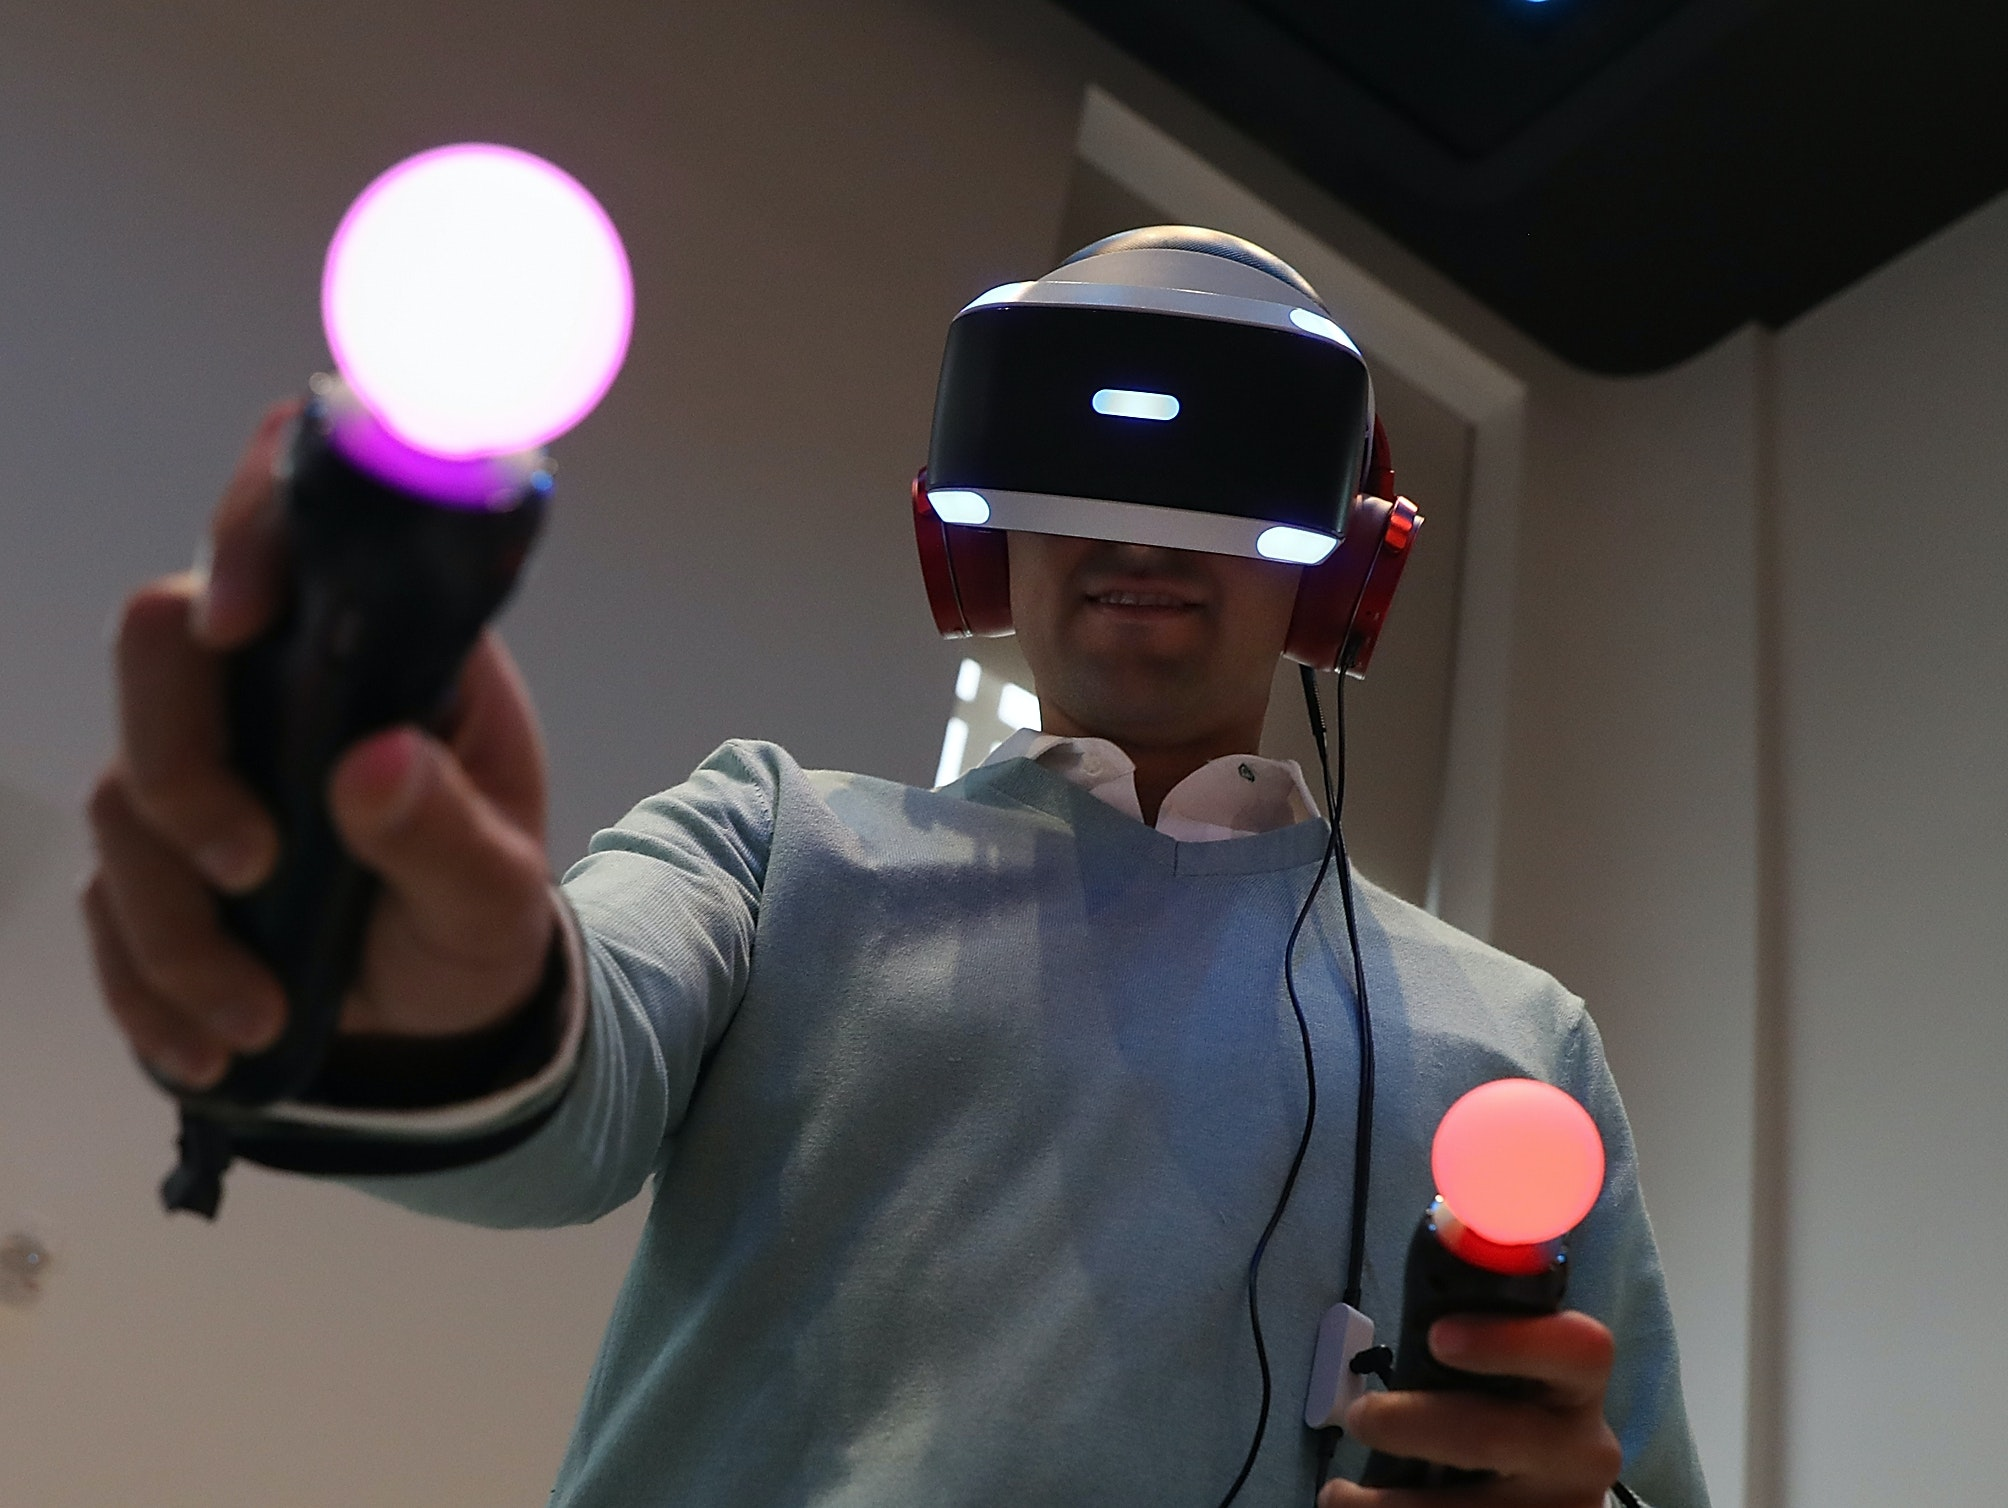 MIT Develops a System for Wireless, Immersive VR